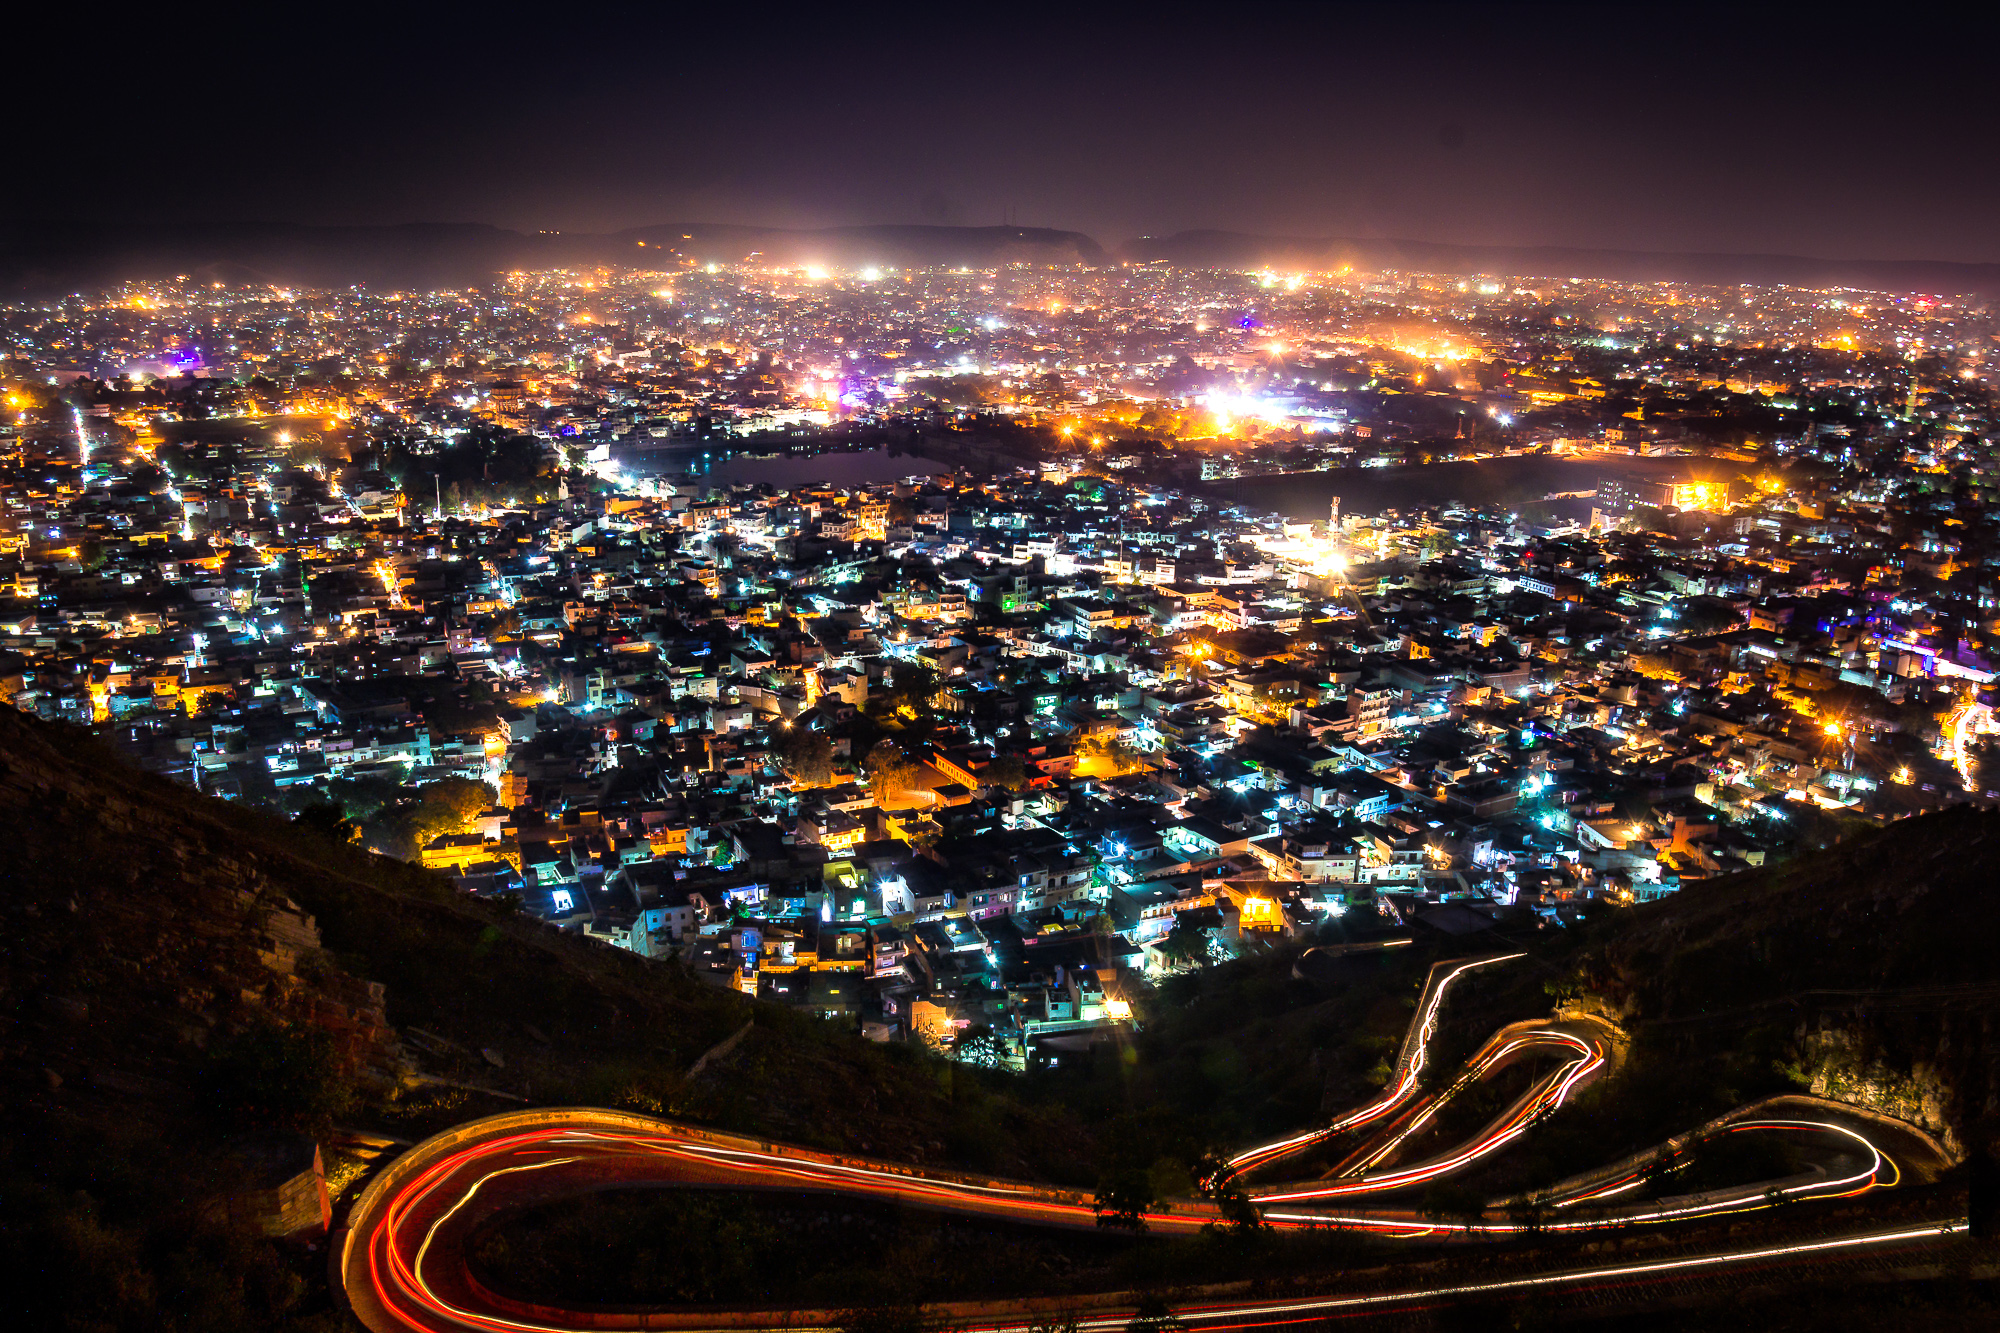 This image is shot from Nahargarh Fort. There is a shortcut road to the fort which can be covered by foot or bikes. But is it too steep for bike as well. As the bikes went down the road tracing the path and the city glittering make me to capture this.